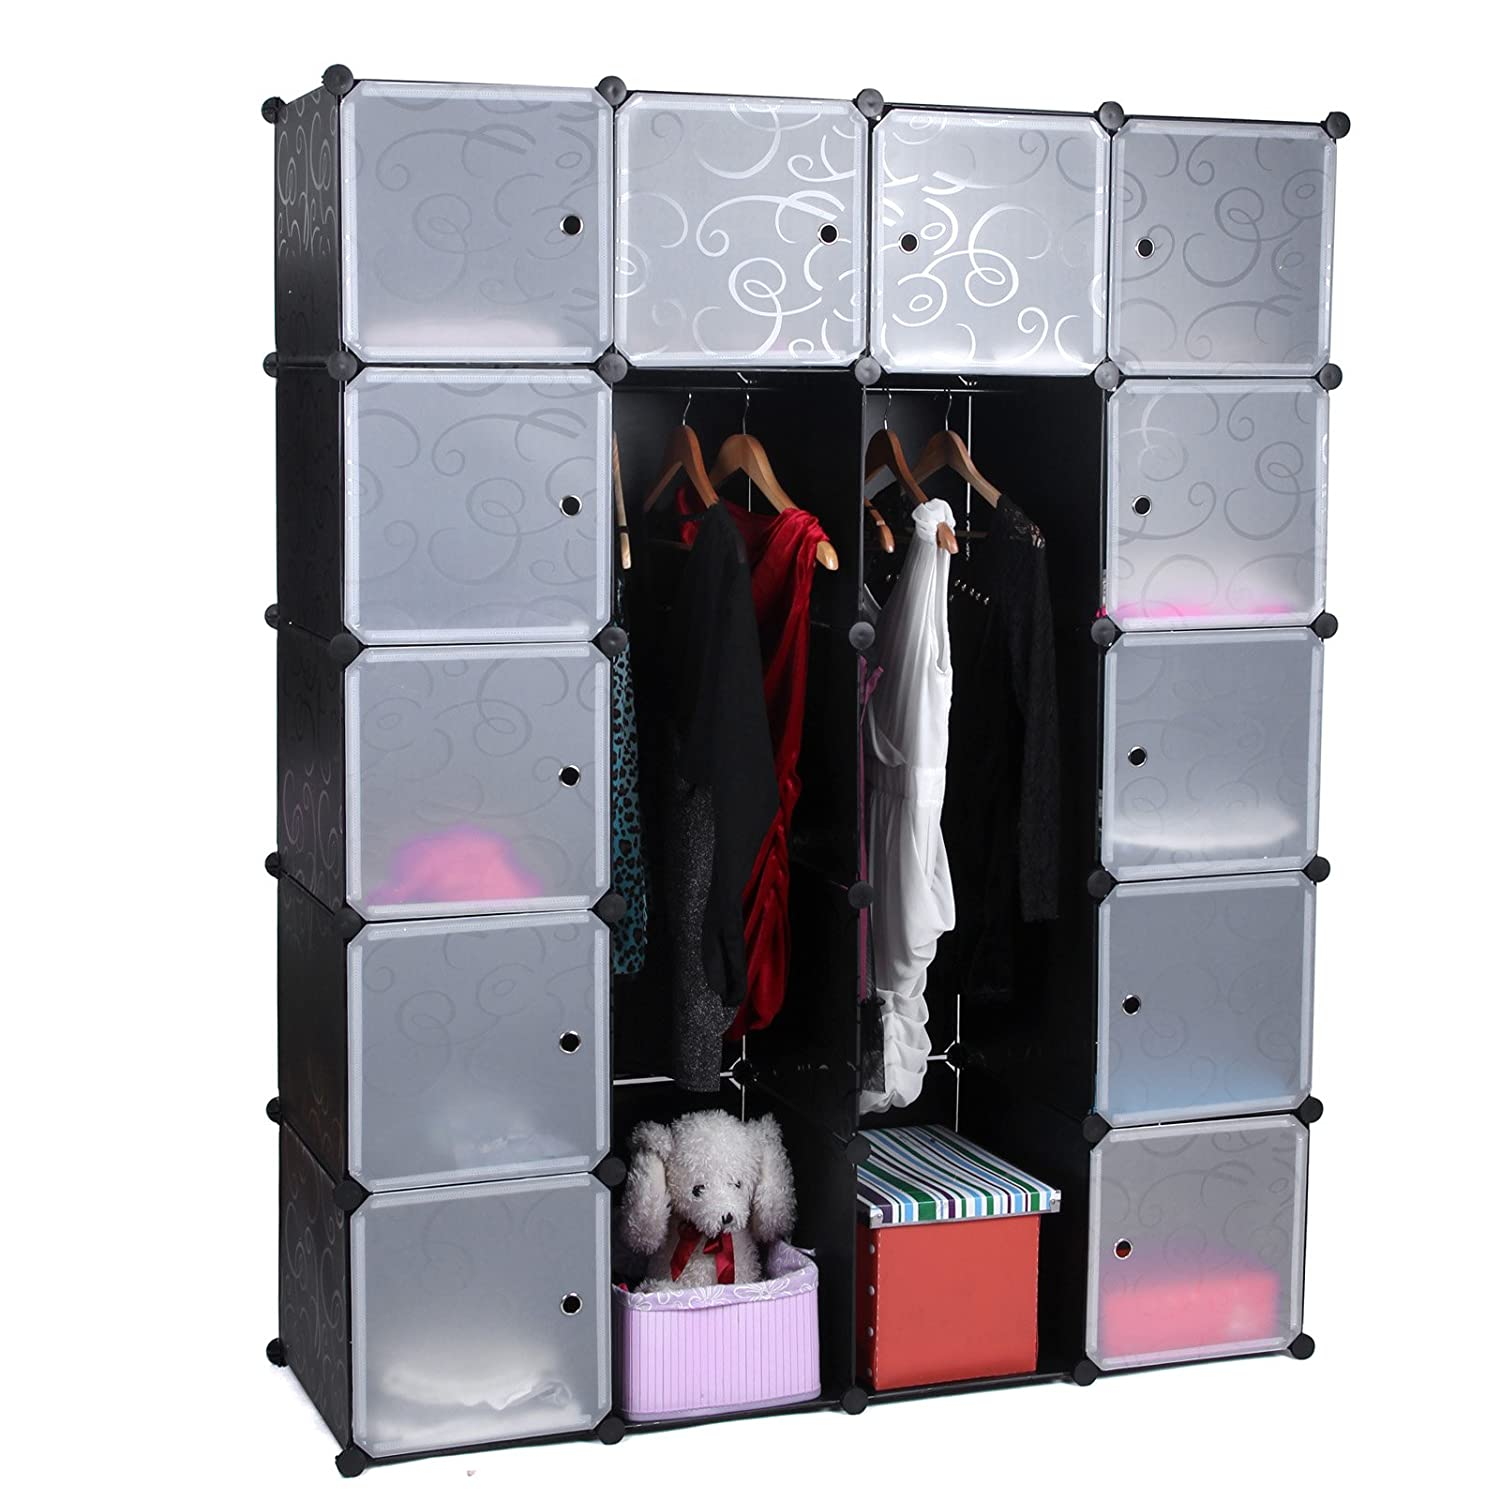 rezension songmics diy kleiderschrank garderobenschrank aufbewahrung steckregalsystem mit 2. Black Bedroom Furniture Sets. Home Design Ideas